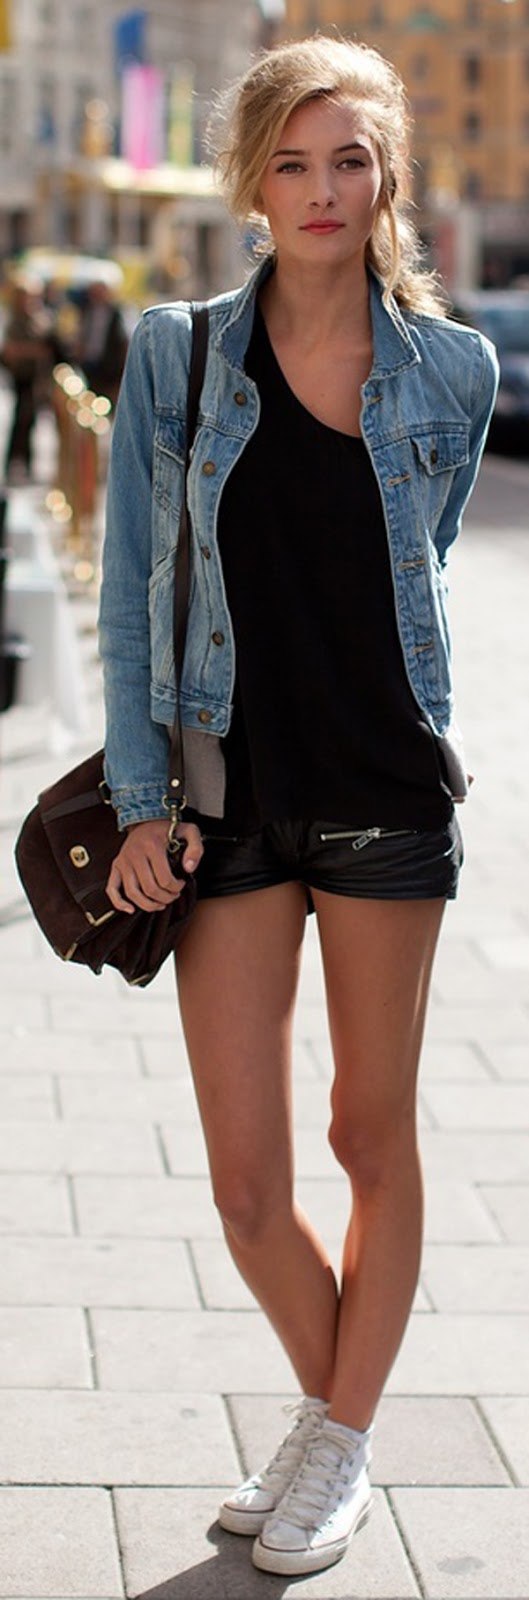 trendy spring outfits